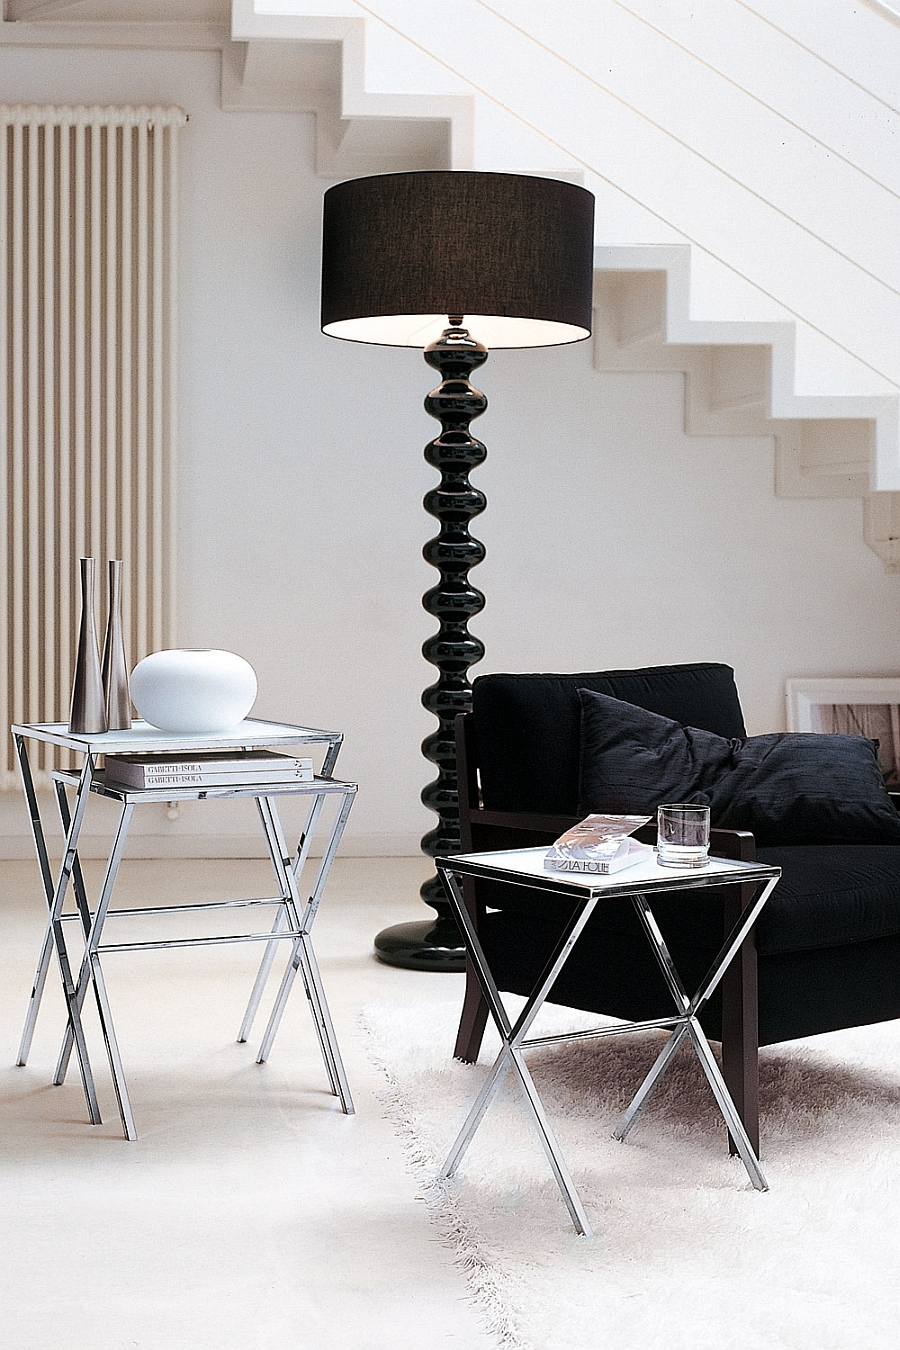 Stylish floor lamp in solid wood and silk shade